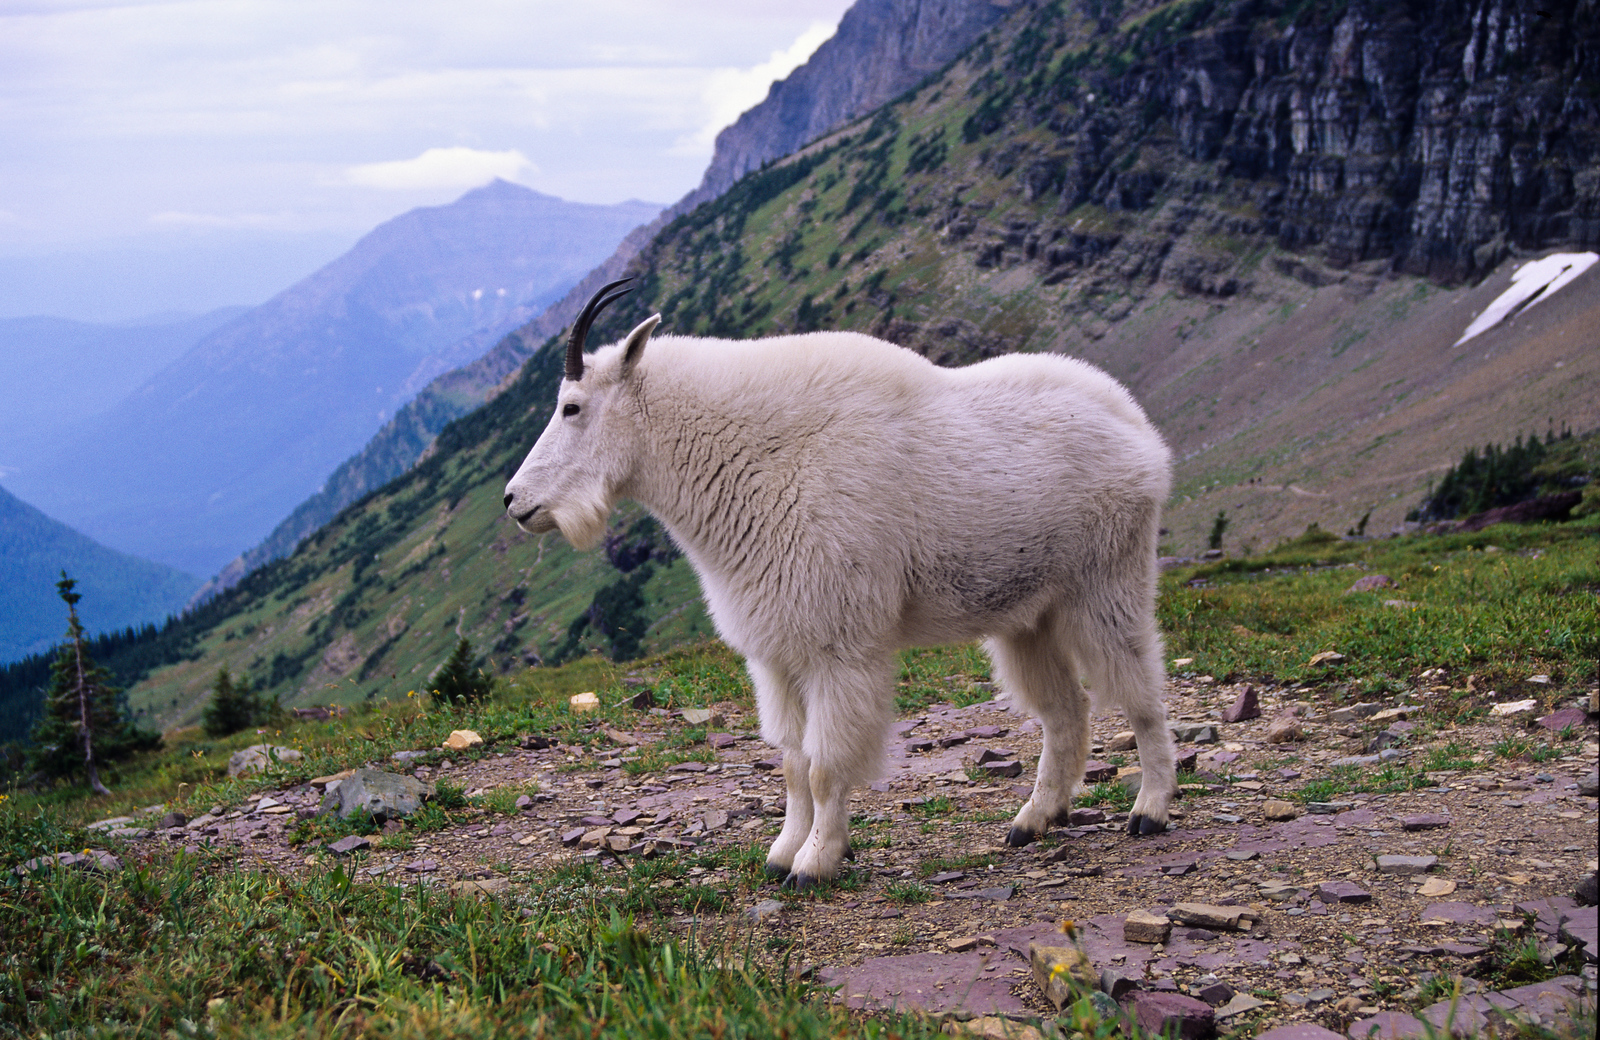 We first saw this mountain goat when it was near the snow patch in upper right.  For unknown reasions, the goat walked up to us.  This was taken with a wide angle lens, with goat about 12 feet away.  We could hear it breath.  Logan Pass, Glacier NP, Montana.